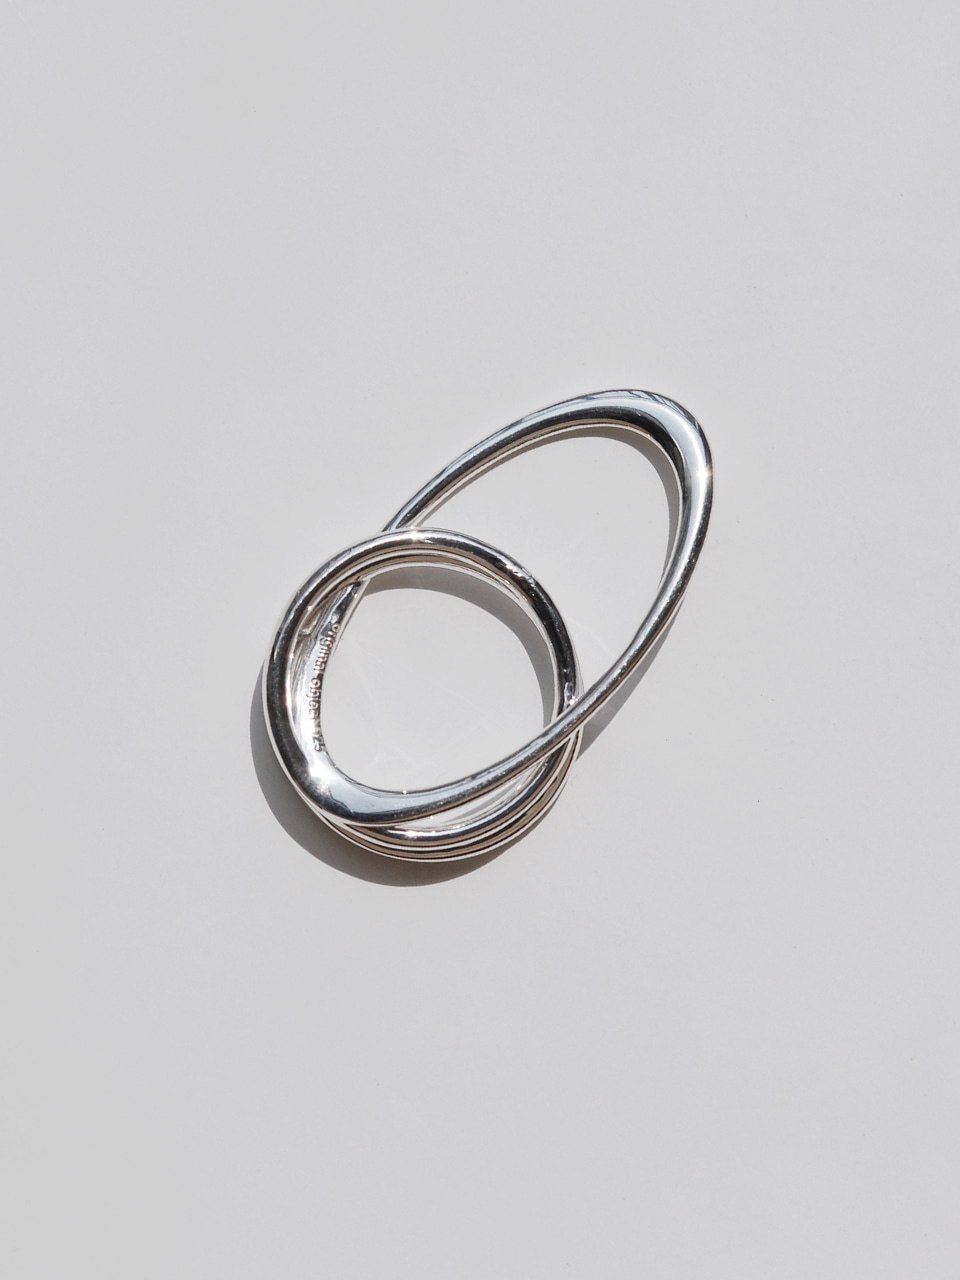 structural ring